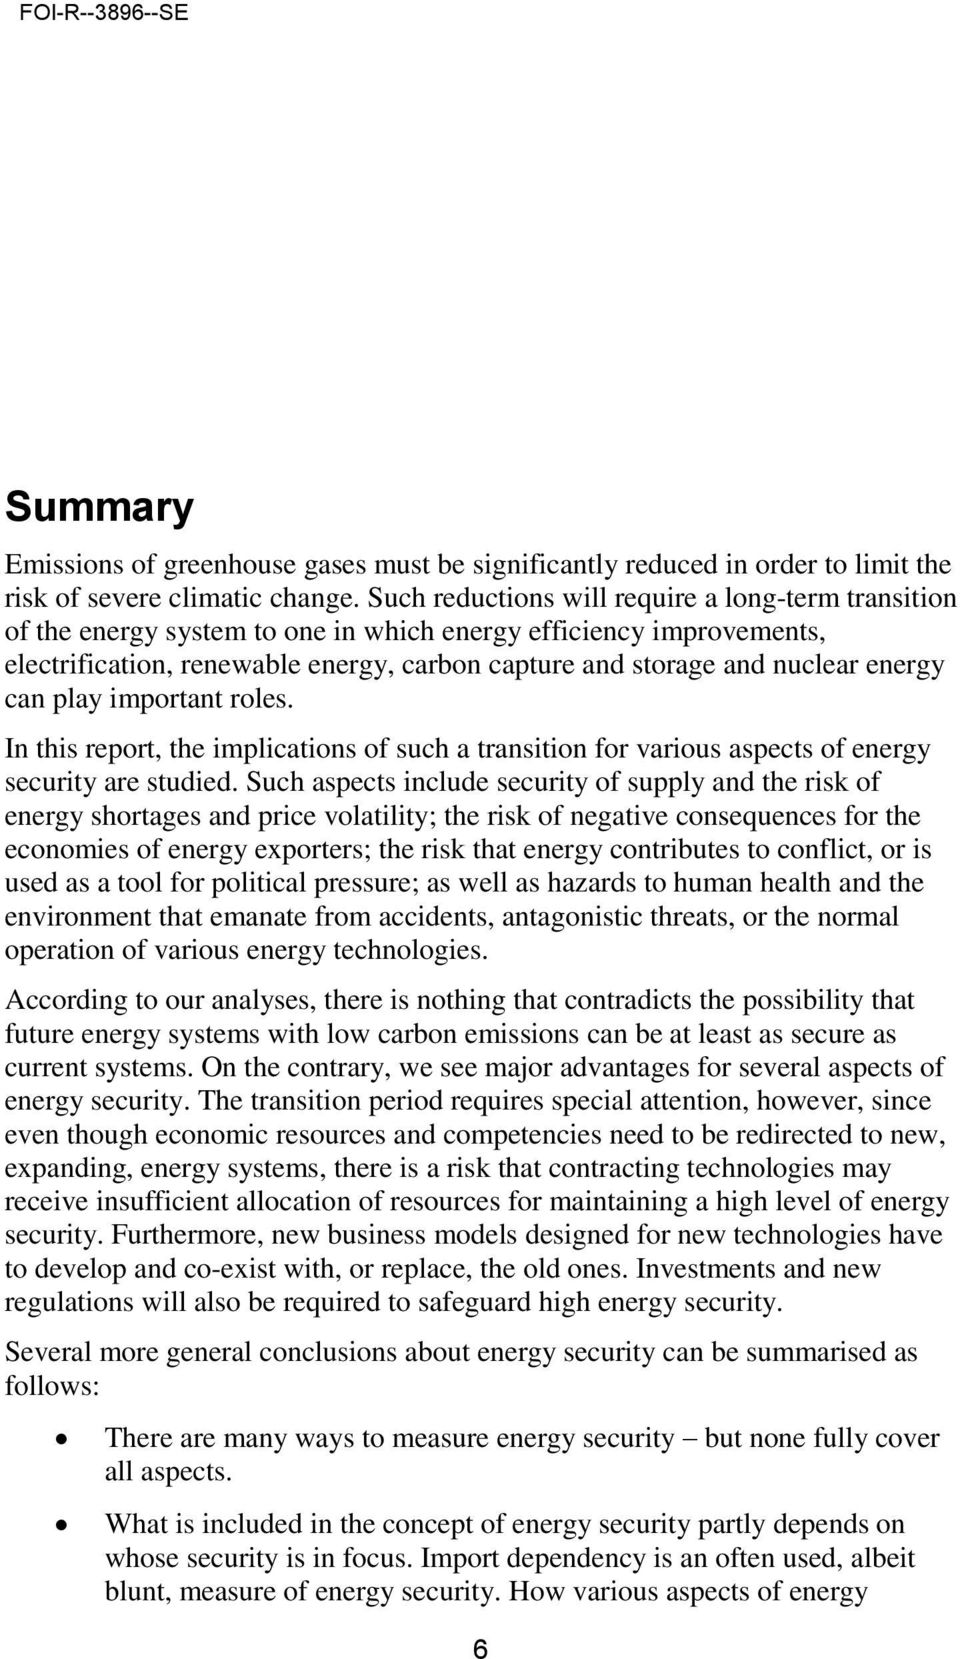 energy can play important roles. In this report, the implications of such a transition for various aspects of energy security are studied.